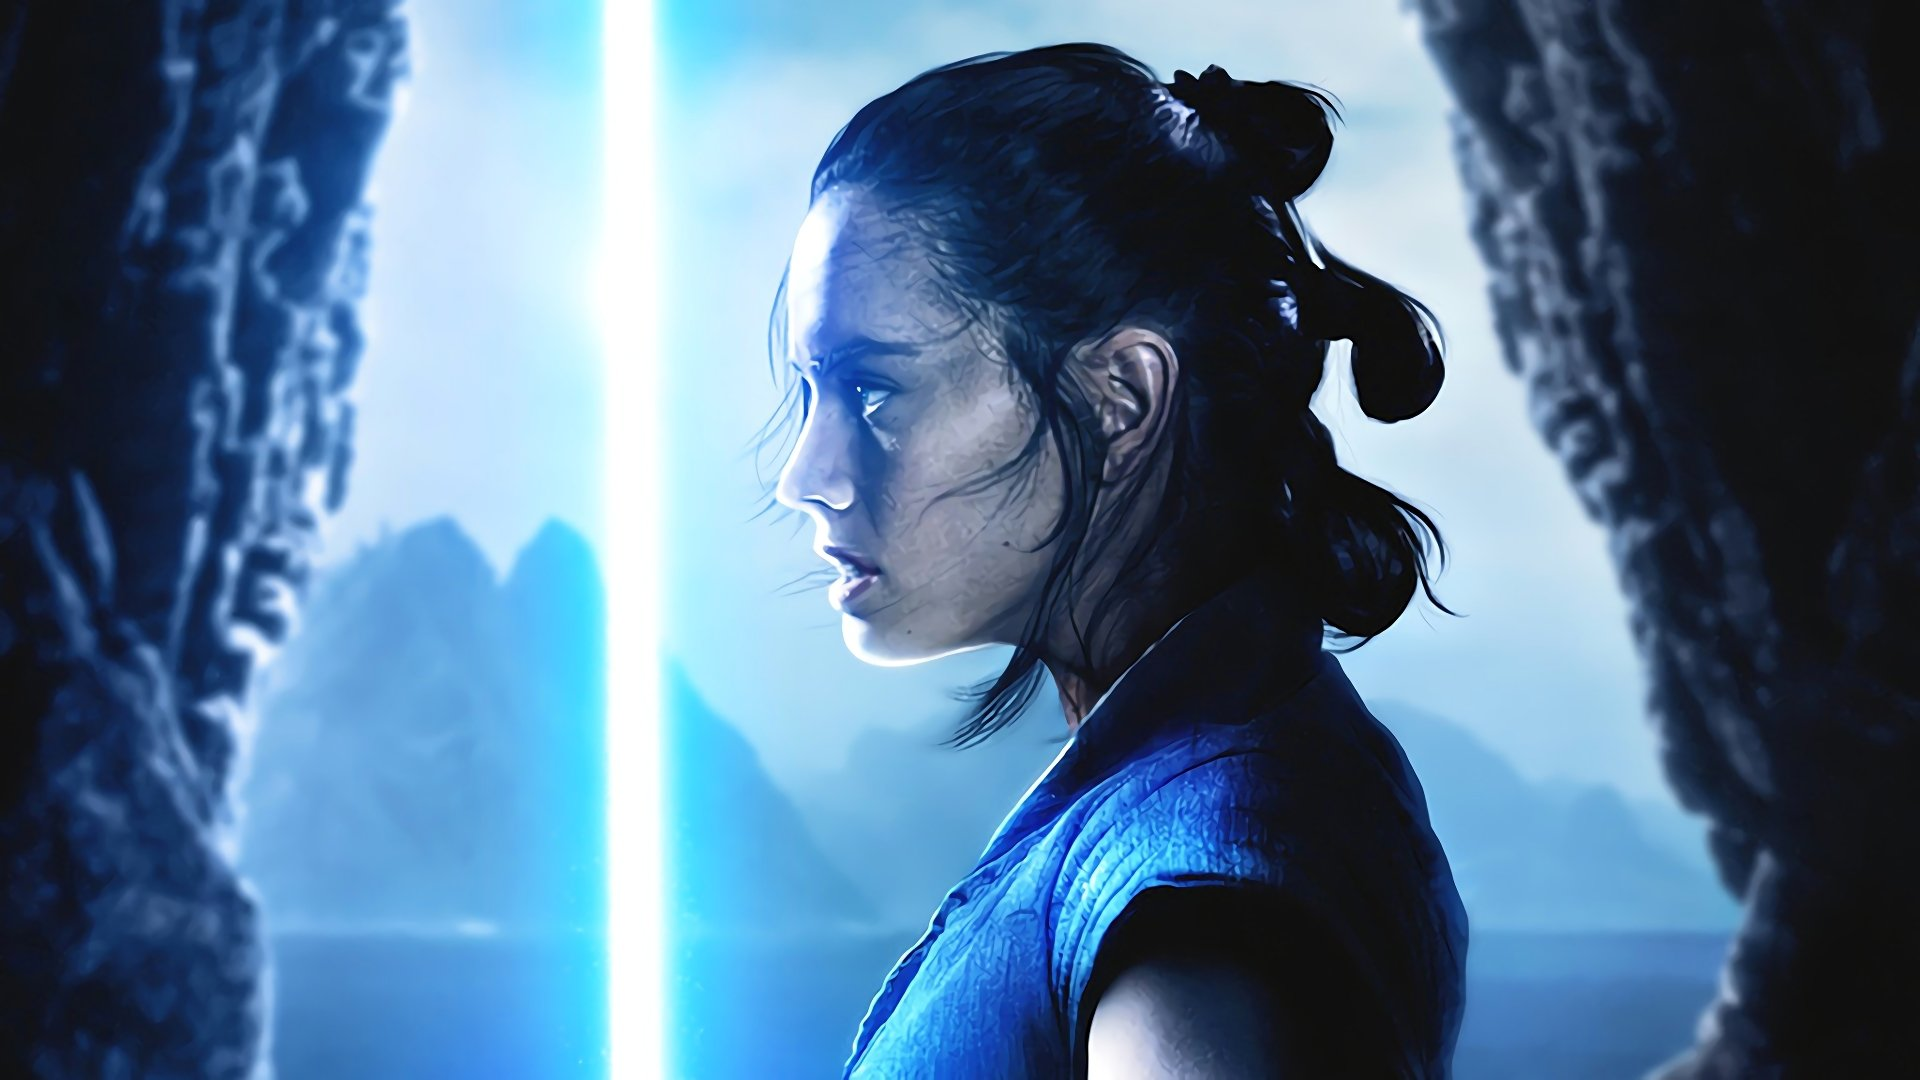 Free Download Rey Lightsaber Full Hd Wallpaper And Background Image 1920x1080 For Your Desktop Mobile Tablet Explore 80 Star Wars Rey Wallpapers Star Wars Rey Wallpaper Star Wars Rey